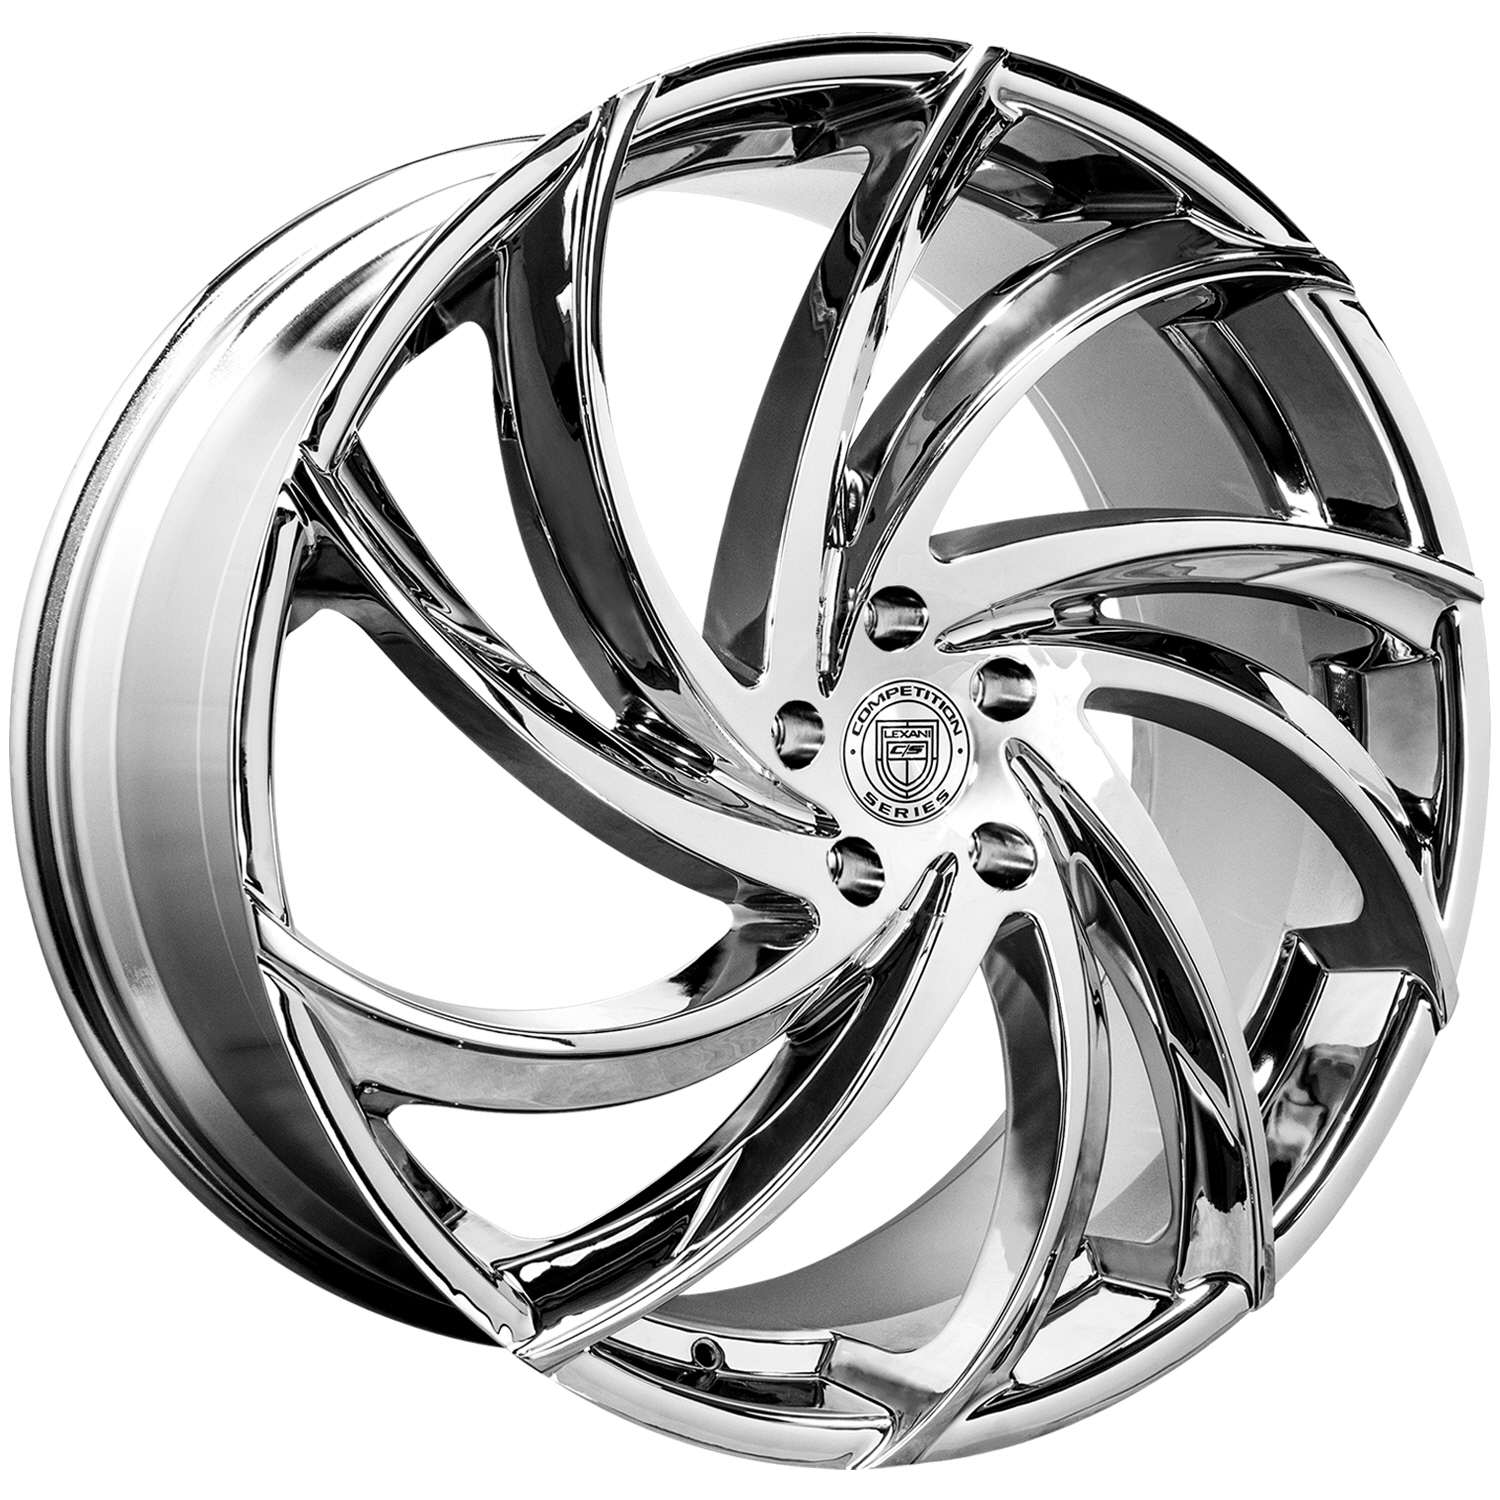 673 - TWISTER  WHEELS AND RIMS PACKAGES